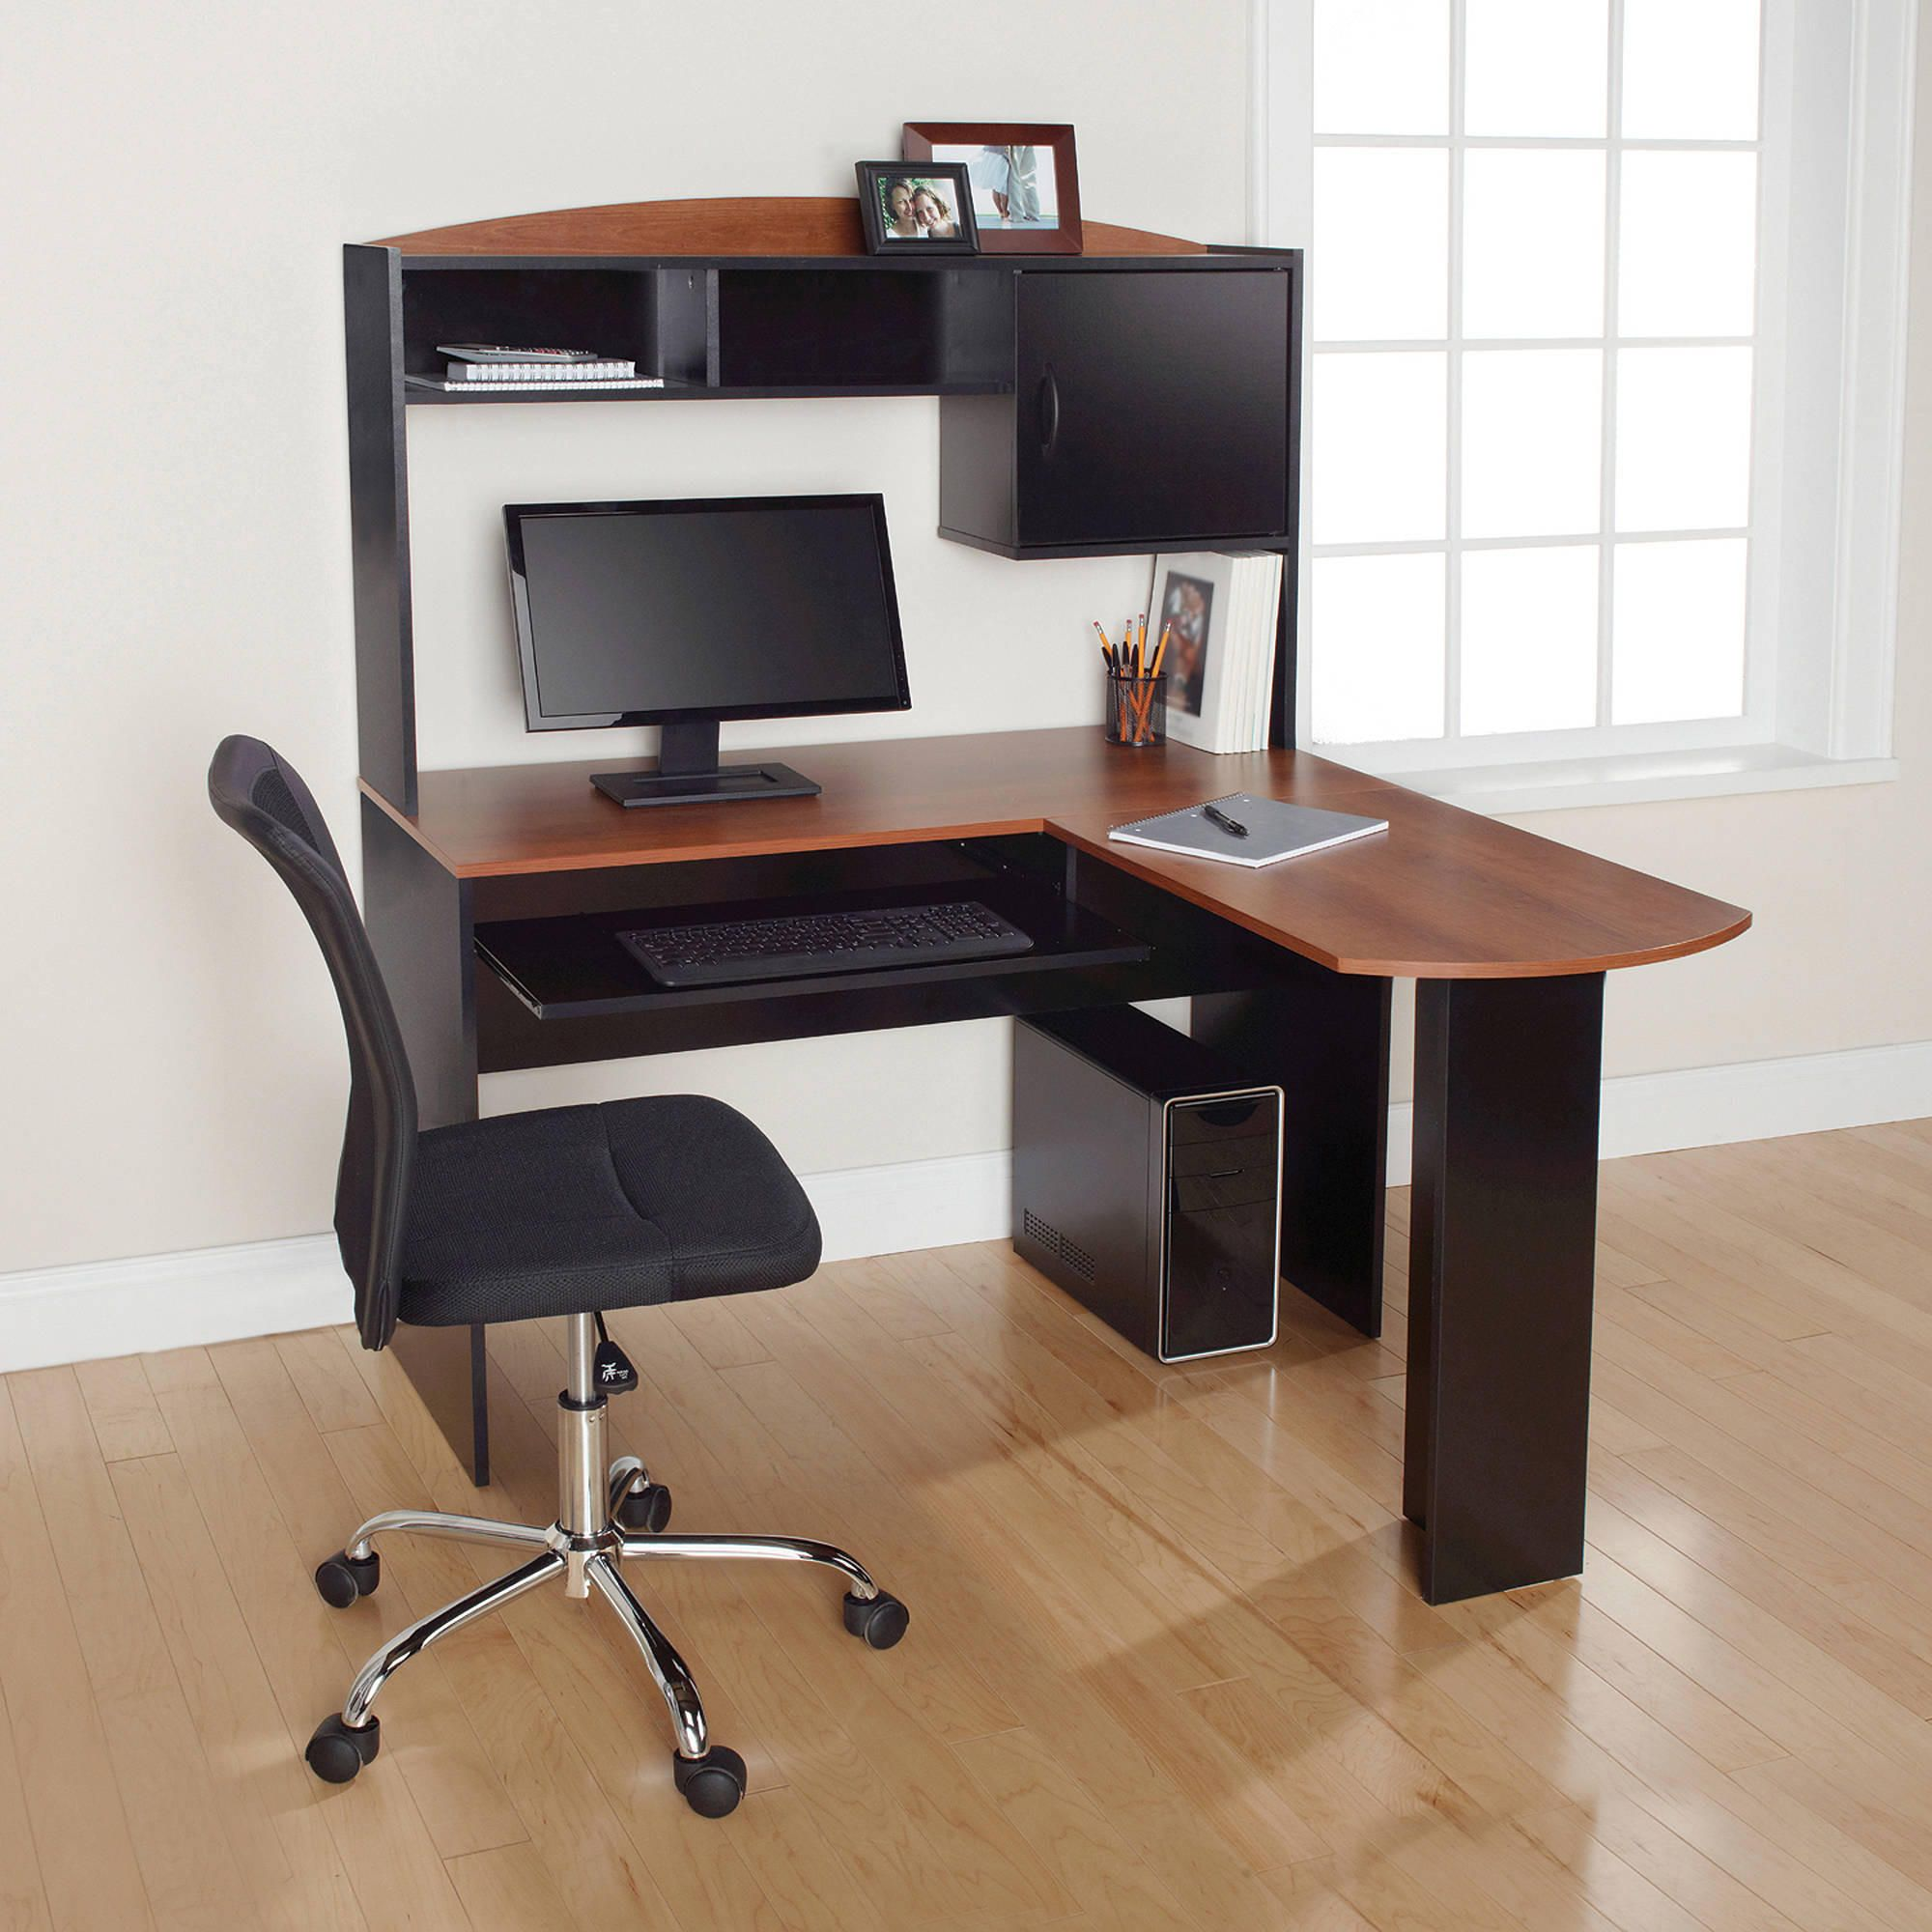 Lshaped computer corner home office desk with hutch furniture